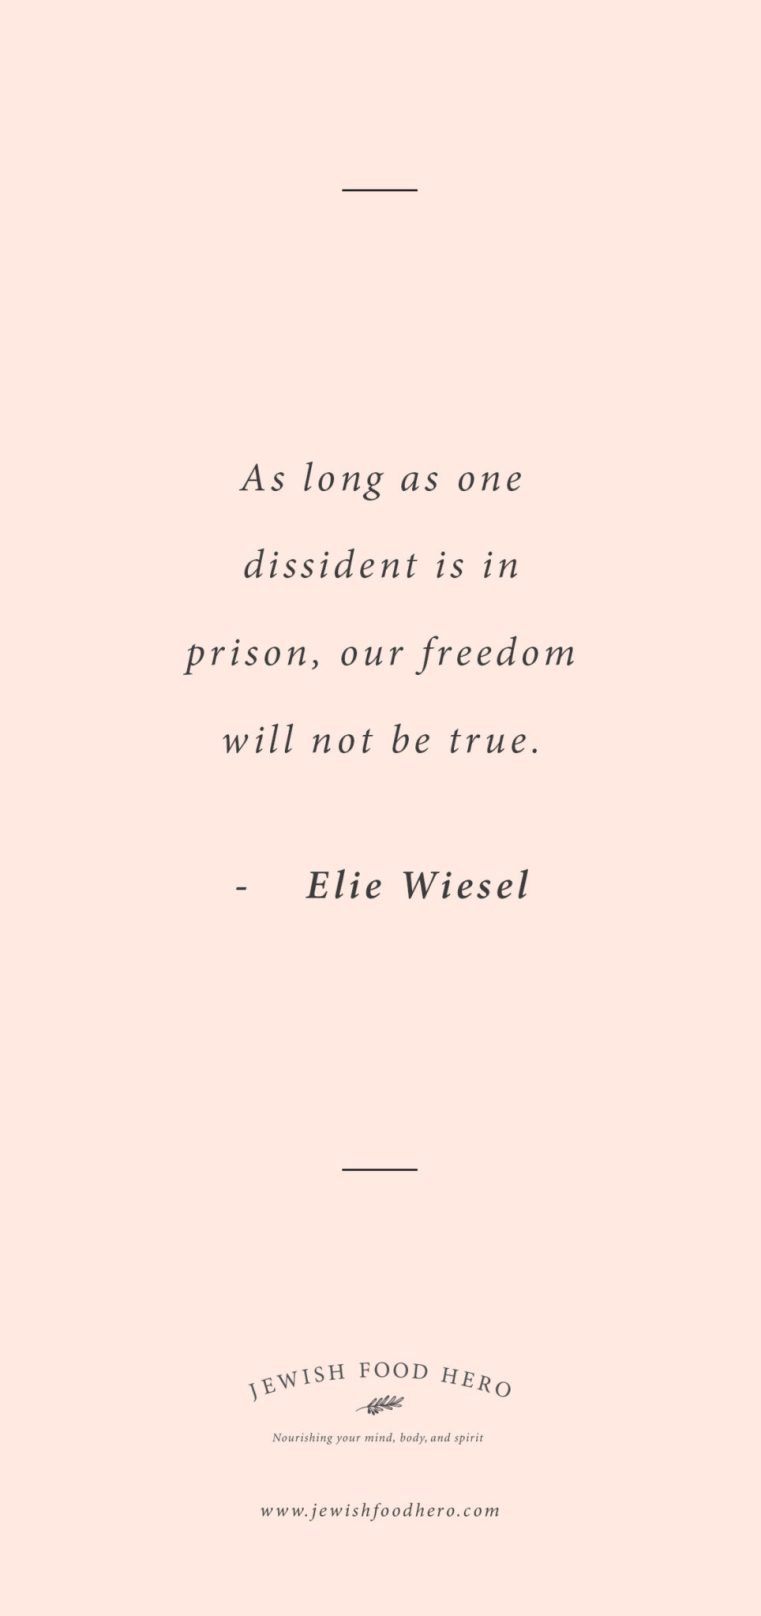 Elie Wiesel quotes, Jewish quotes on freedom